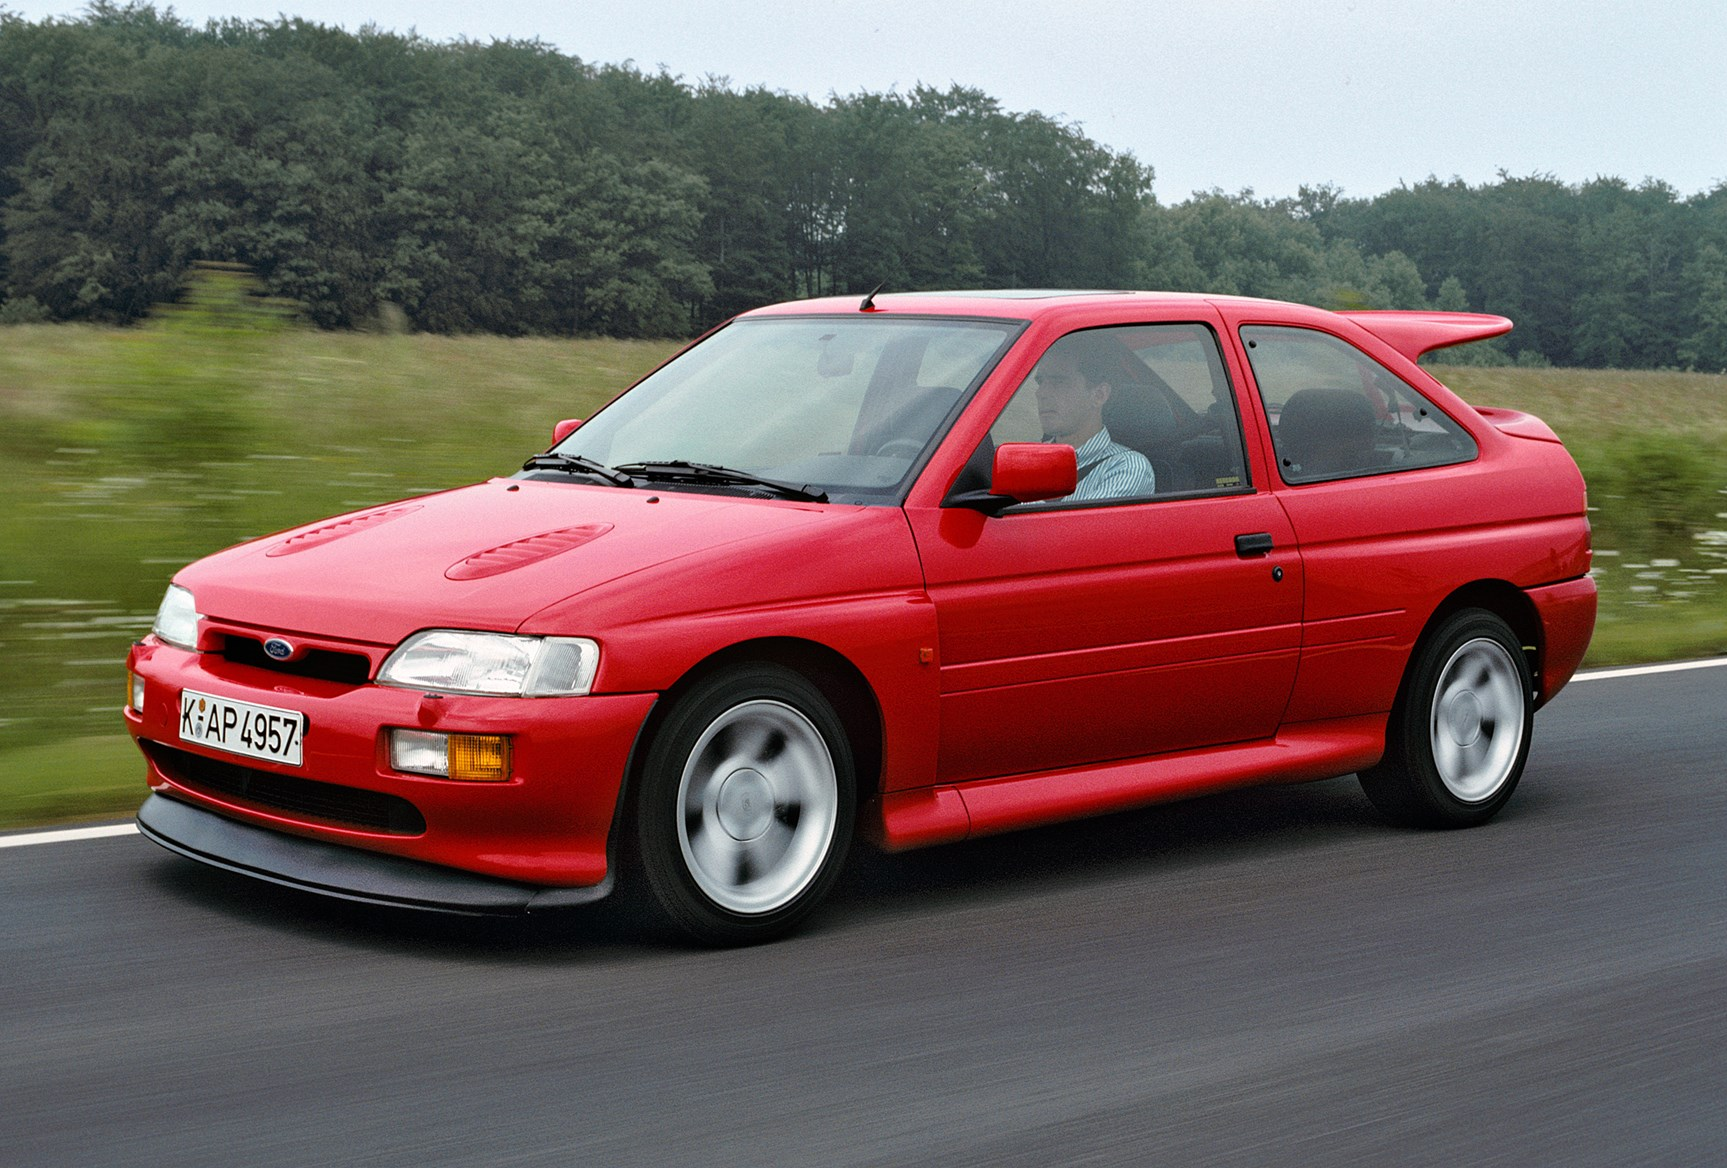 Ford Escort Hatchback Review (1990 - 2001) | Parkers